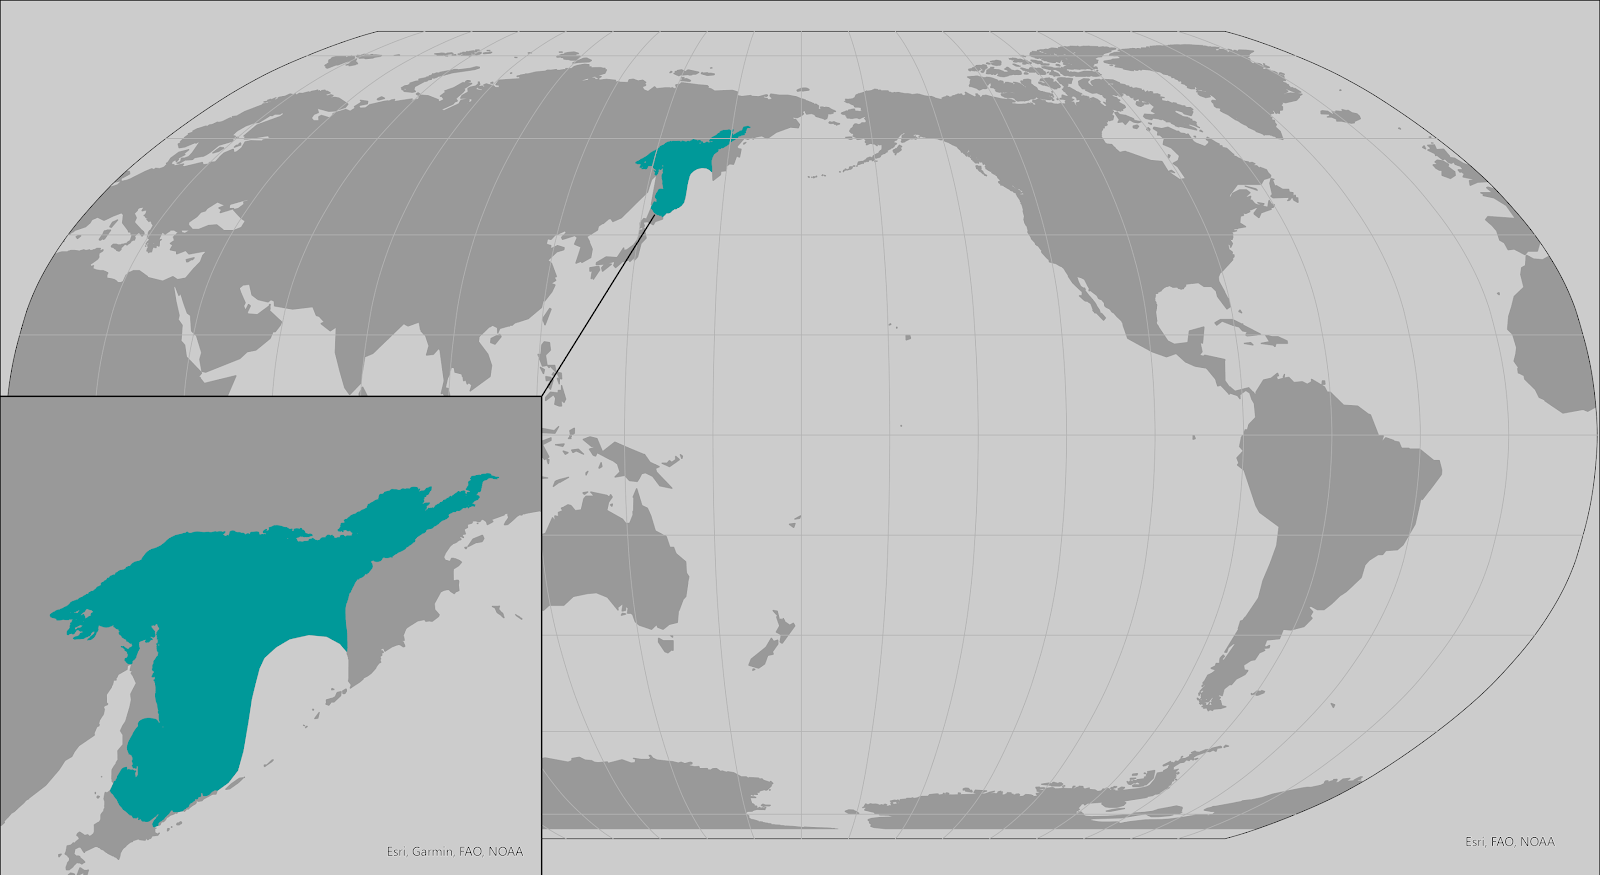 World map providing approximate representation of the Okhotsk subspecies of ringed seal